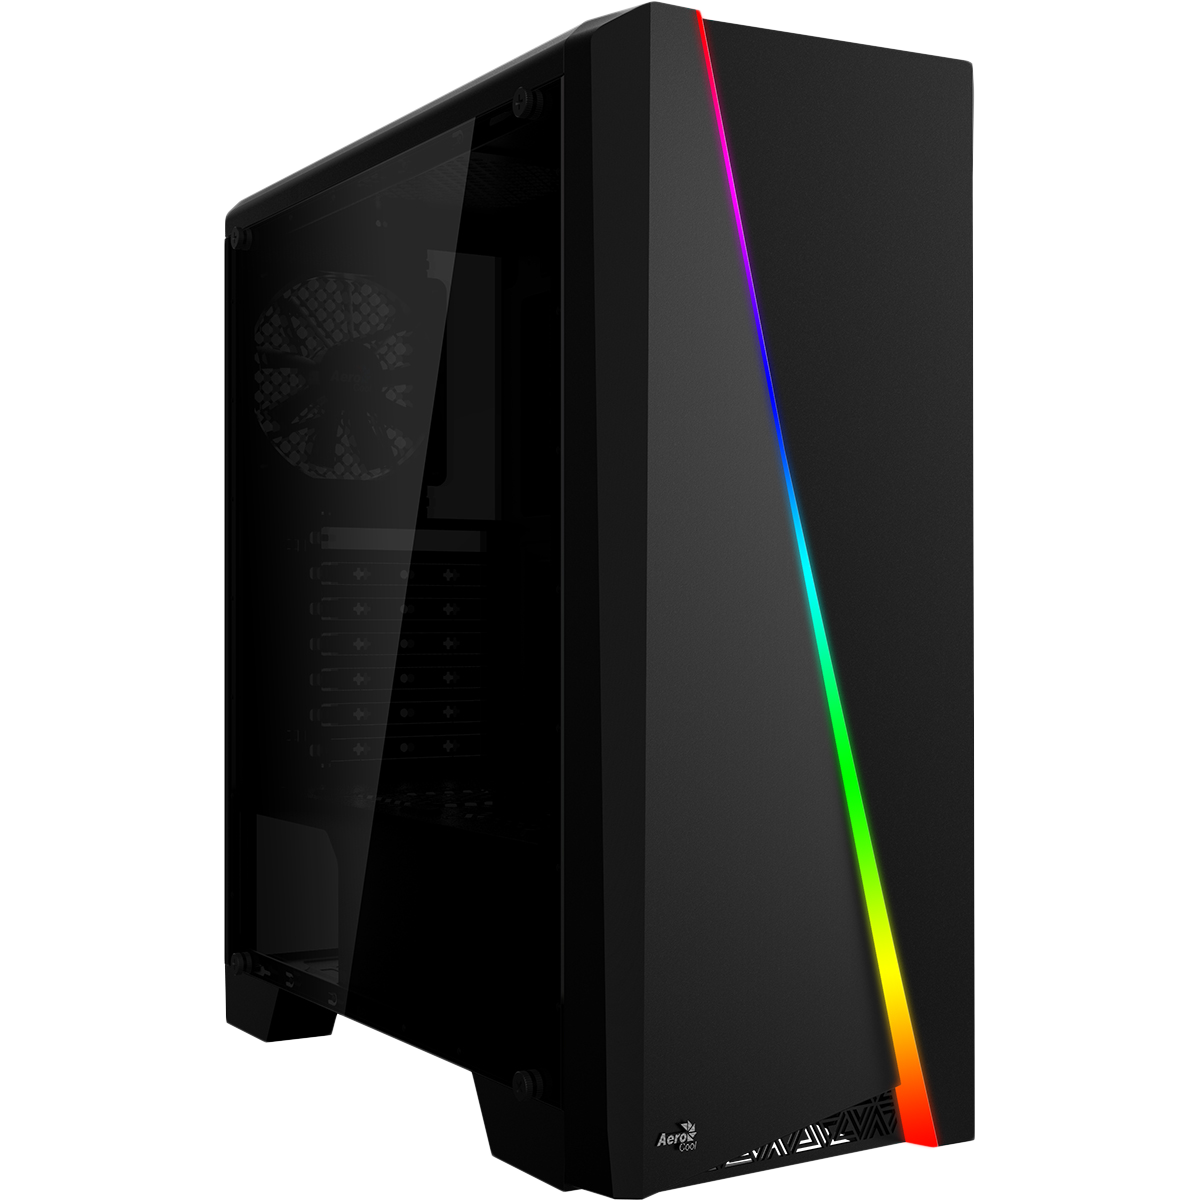 HST Cylon i7 Quad Core GTX1650 4GB NVIDIA Customisable Gaming PC